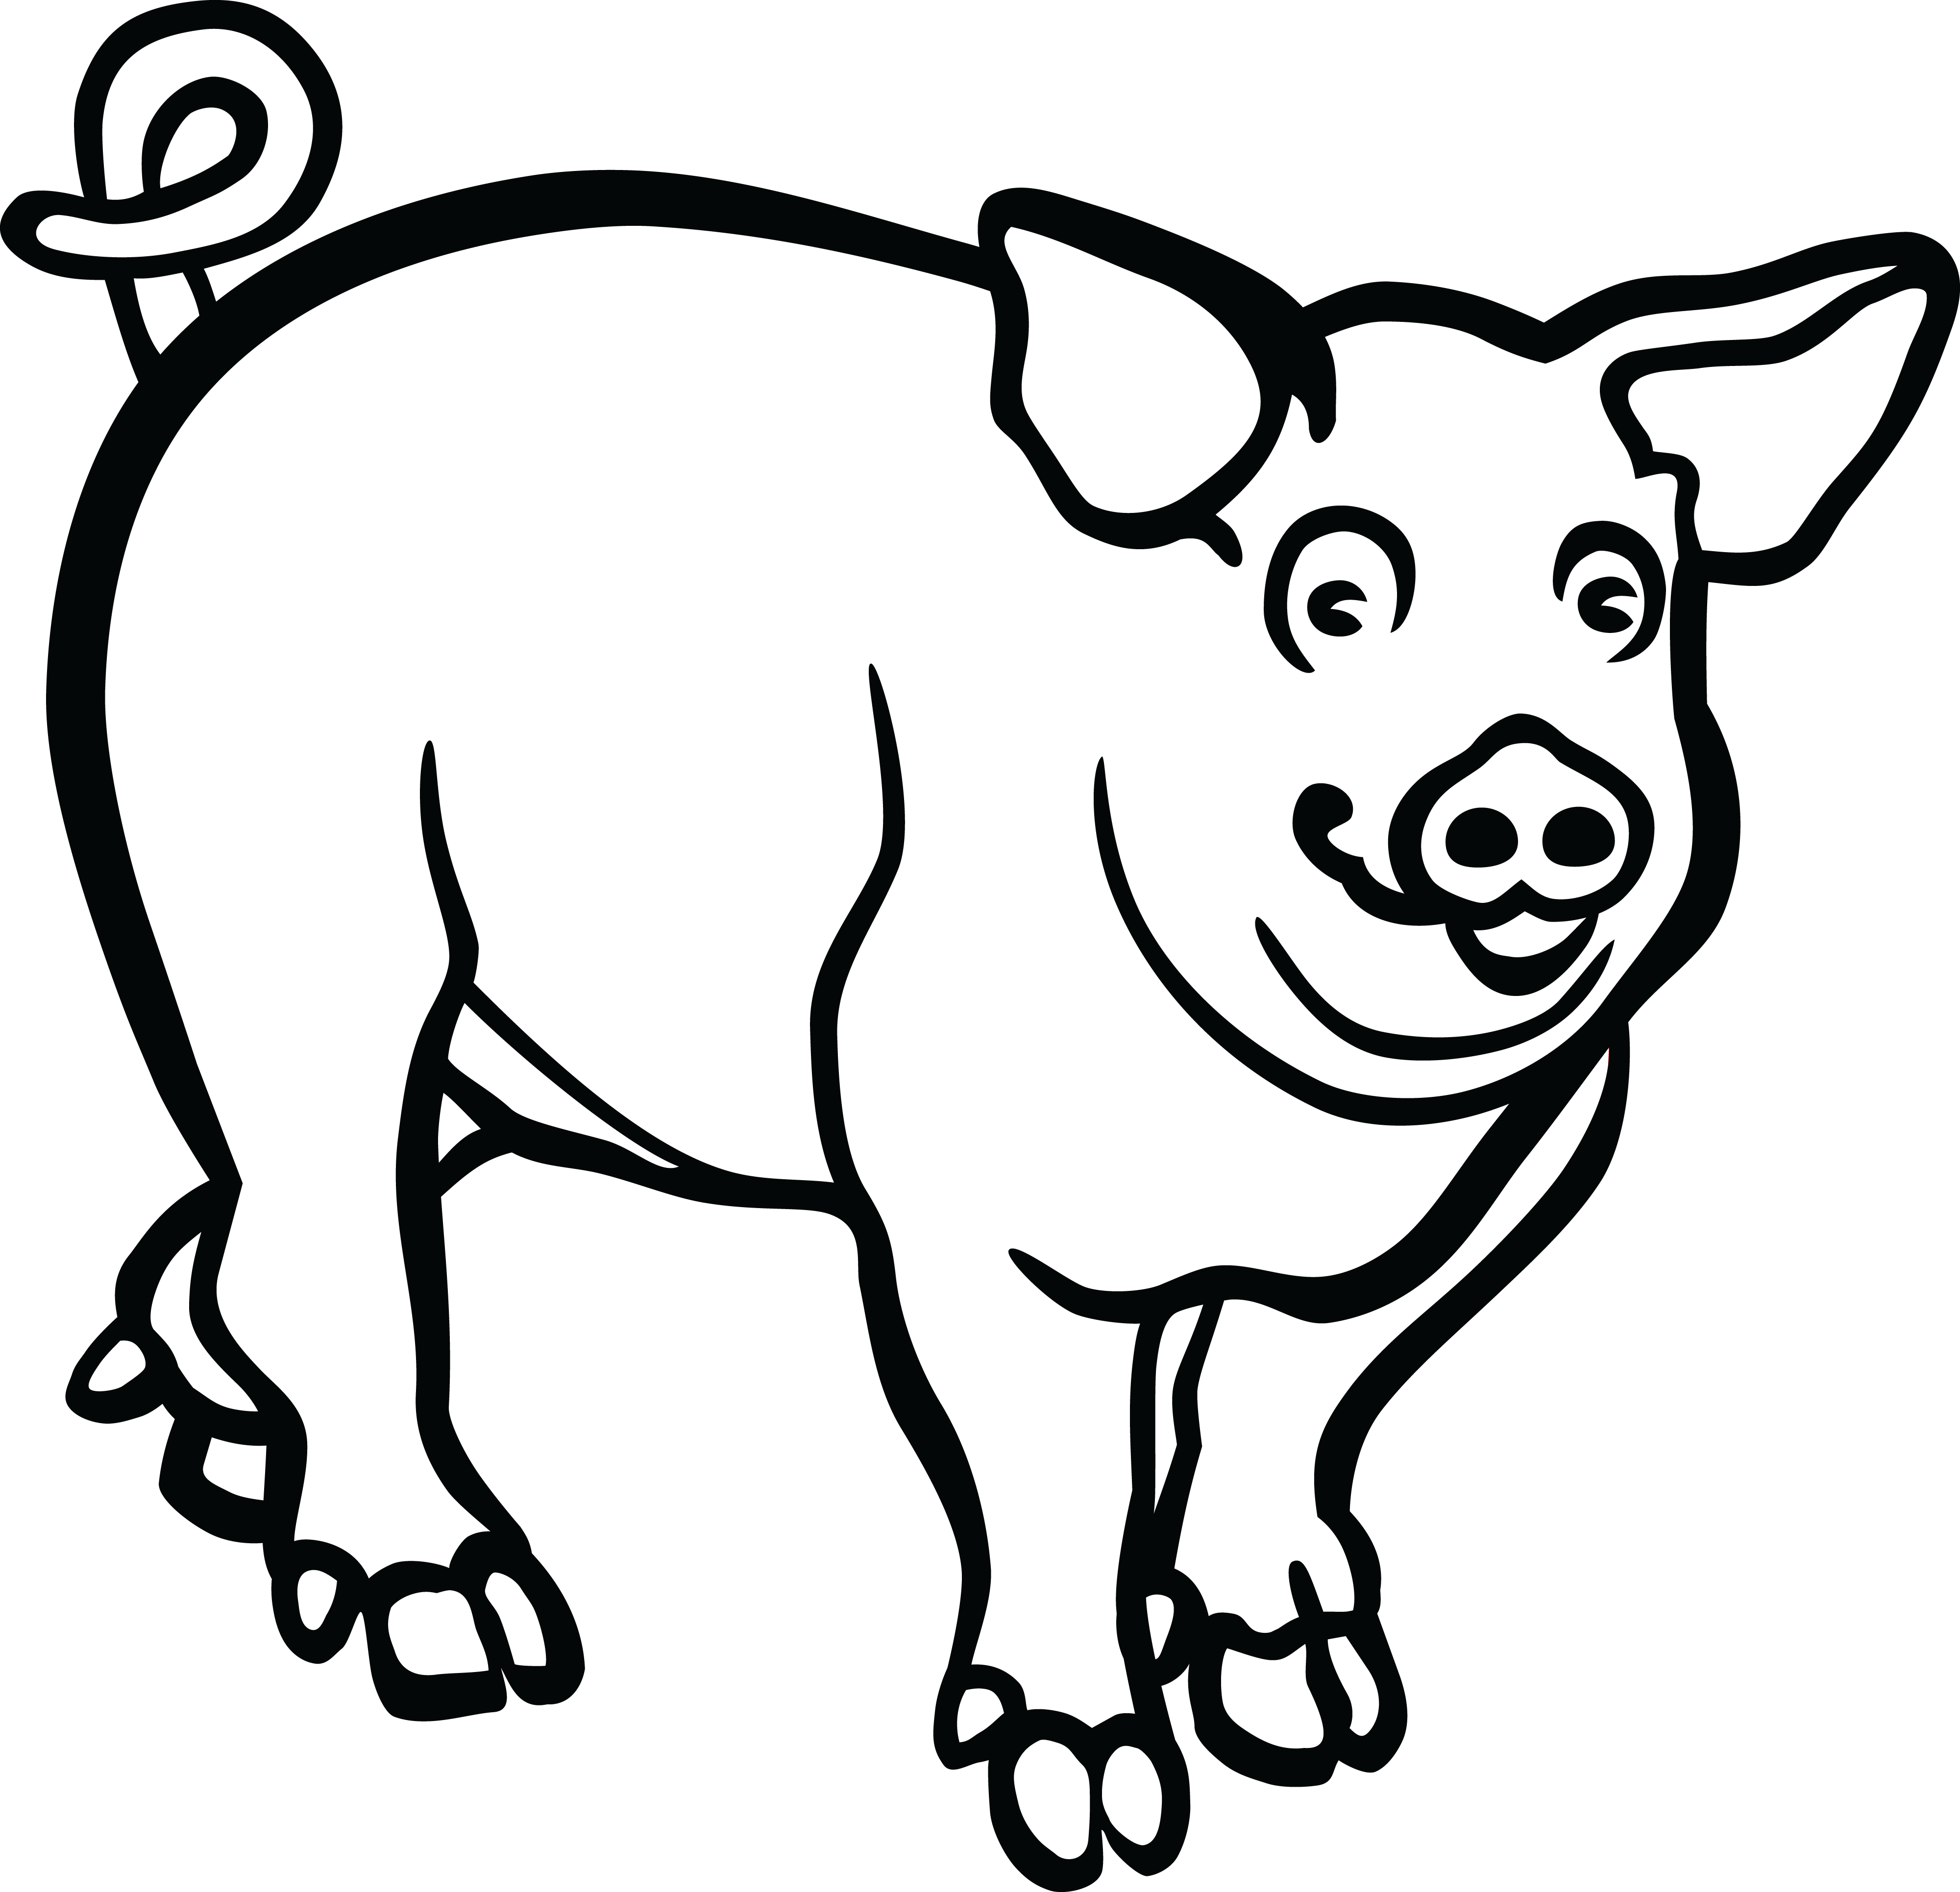 pig outline pigs clipart outline simple easy animal drawings free pig outline